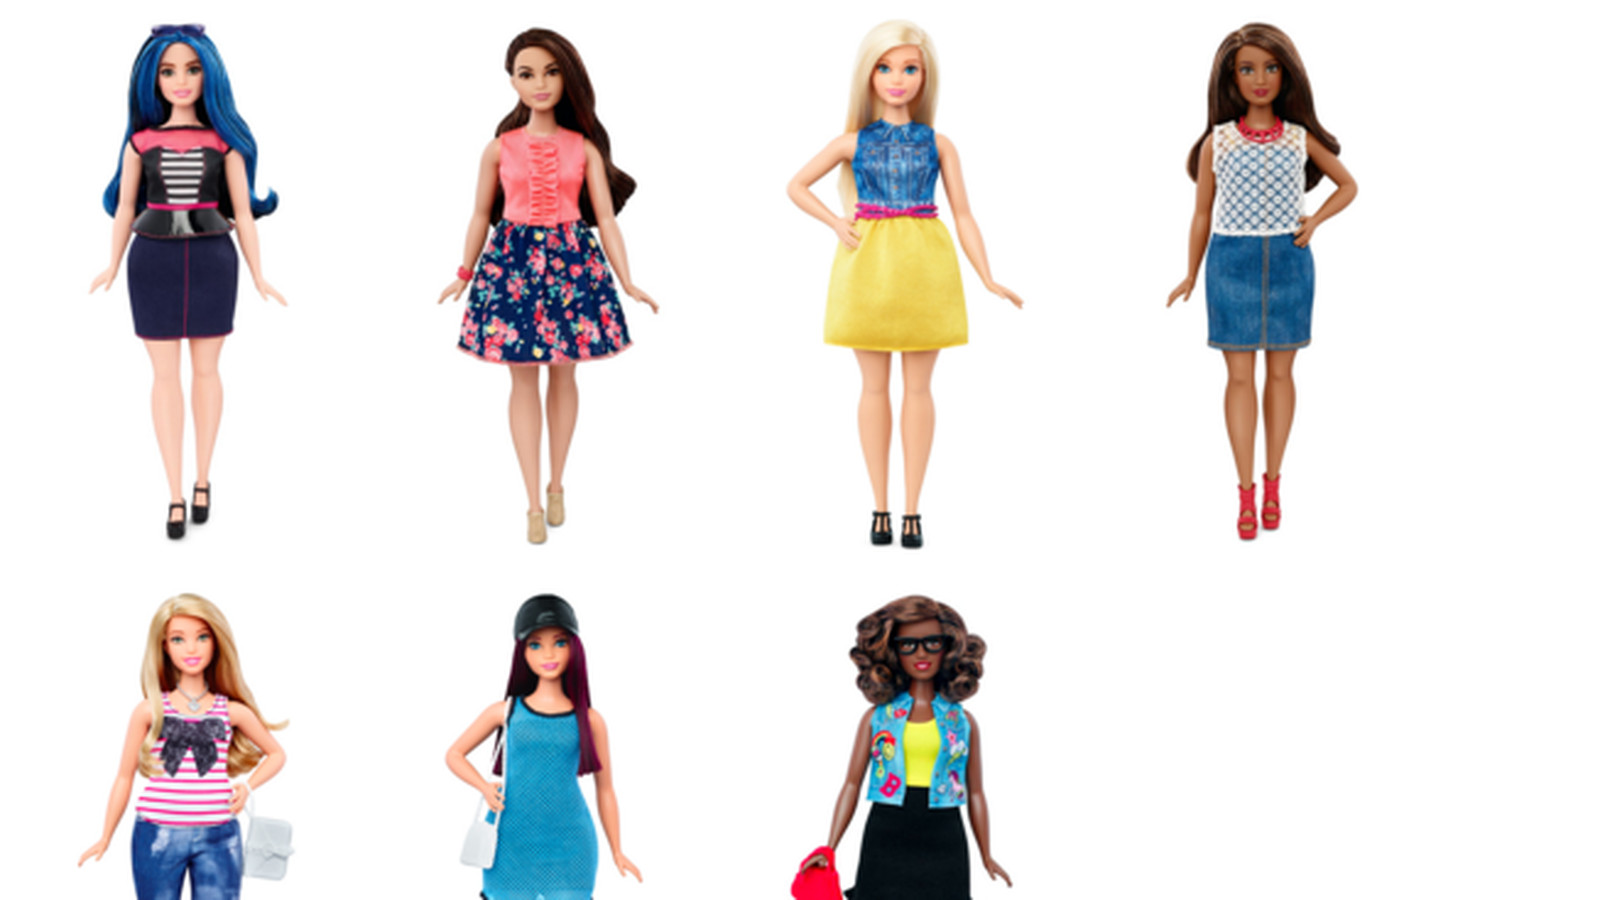 Barbie Is Now Making Curvy Tall Quot And Petite Dolls Vox